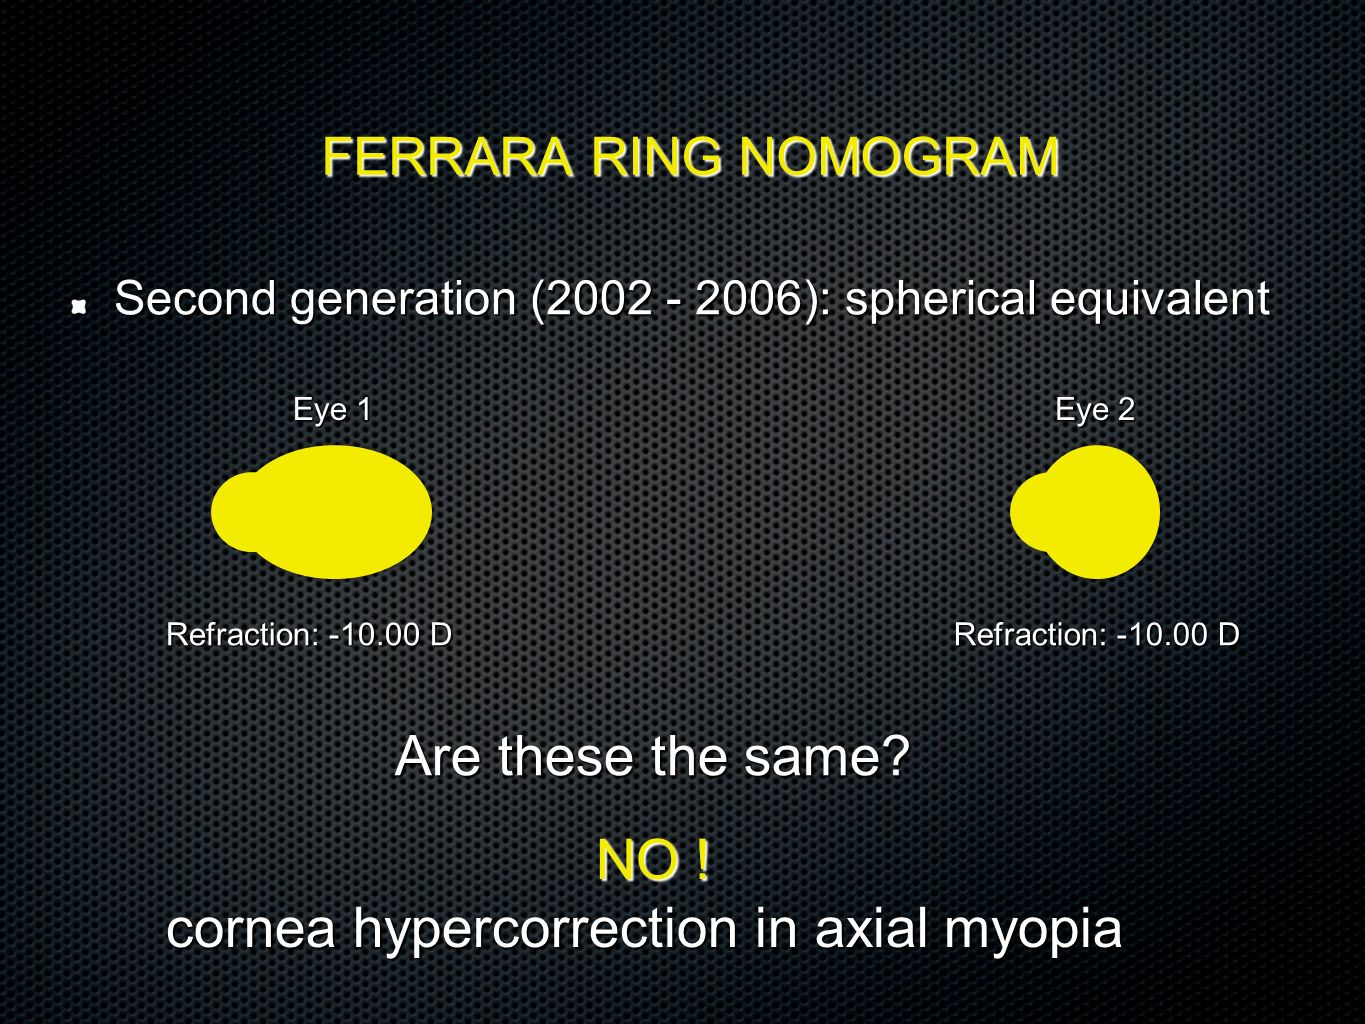 cornea hypercorrection in axial myopia